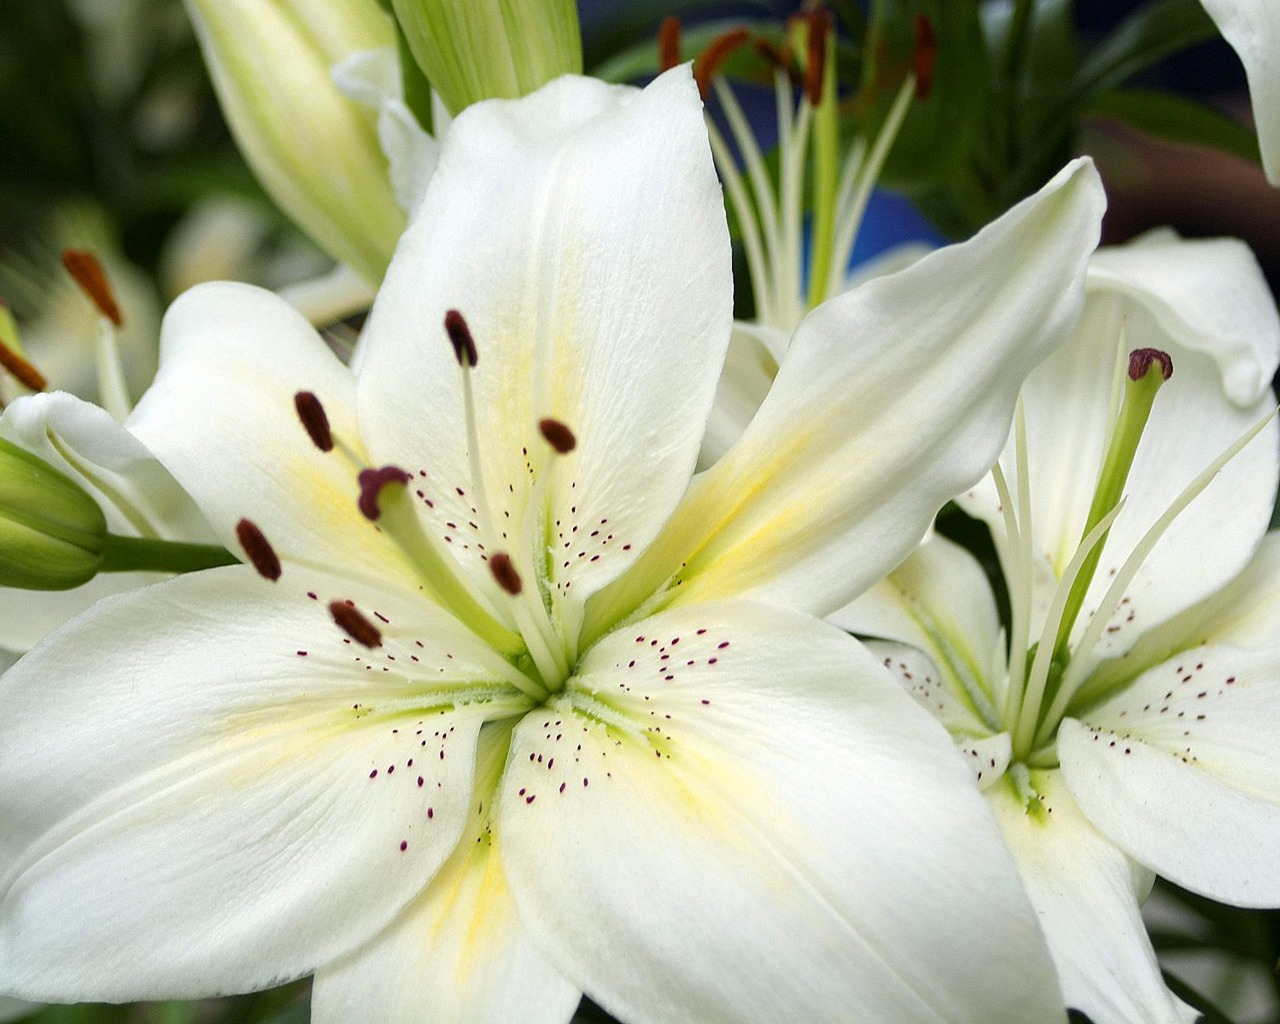 White Lilies Wallpaper Flowers Nature Wallpapers In Jpg Format For